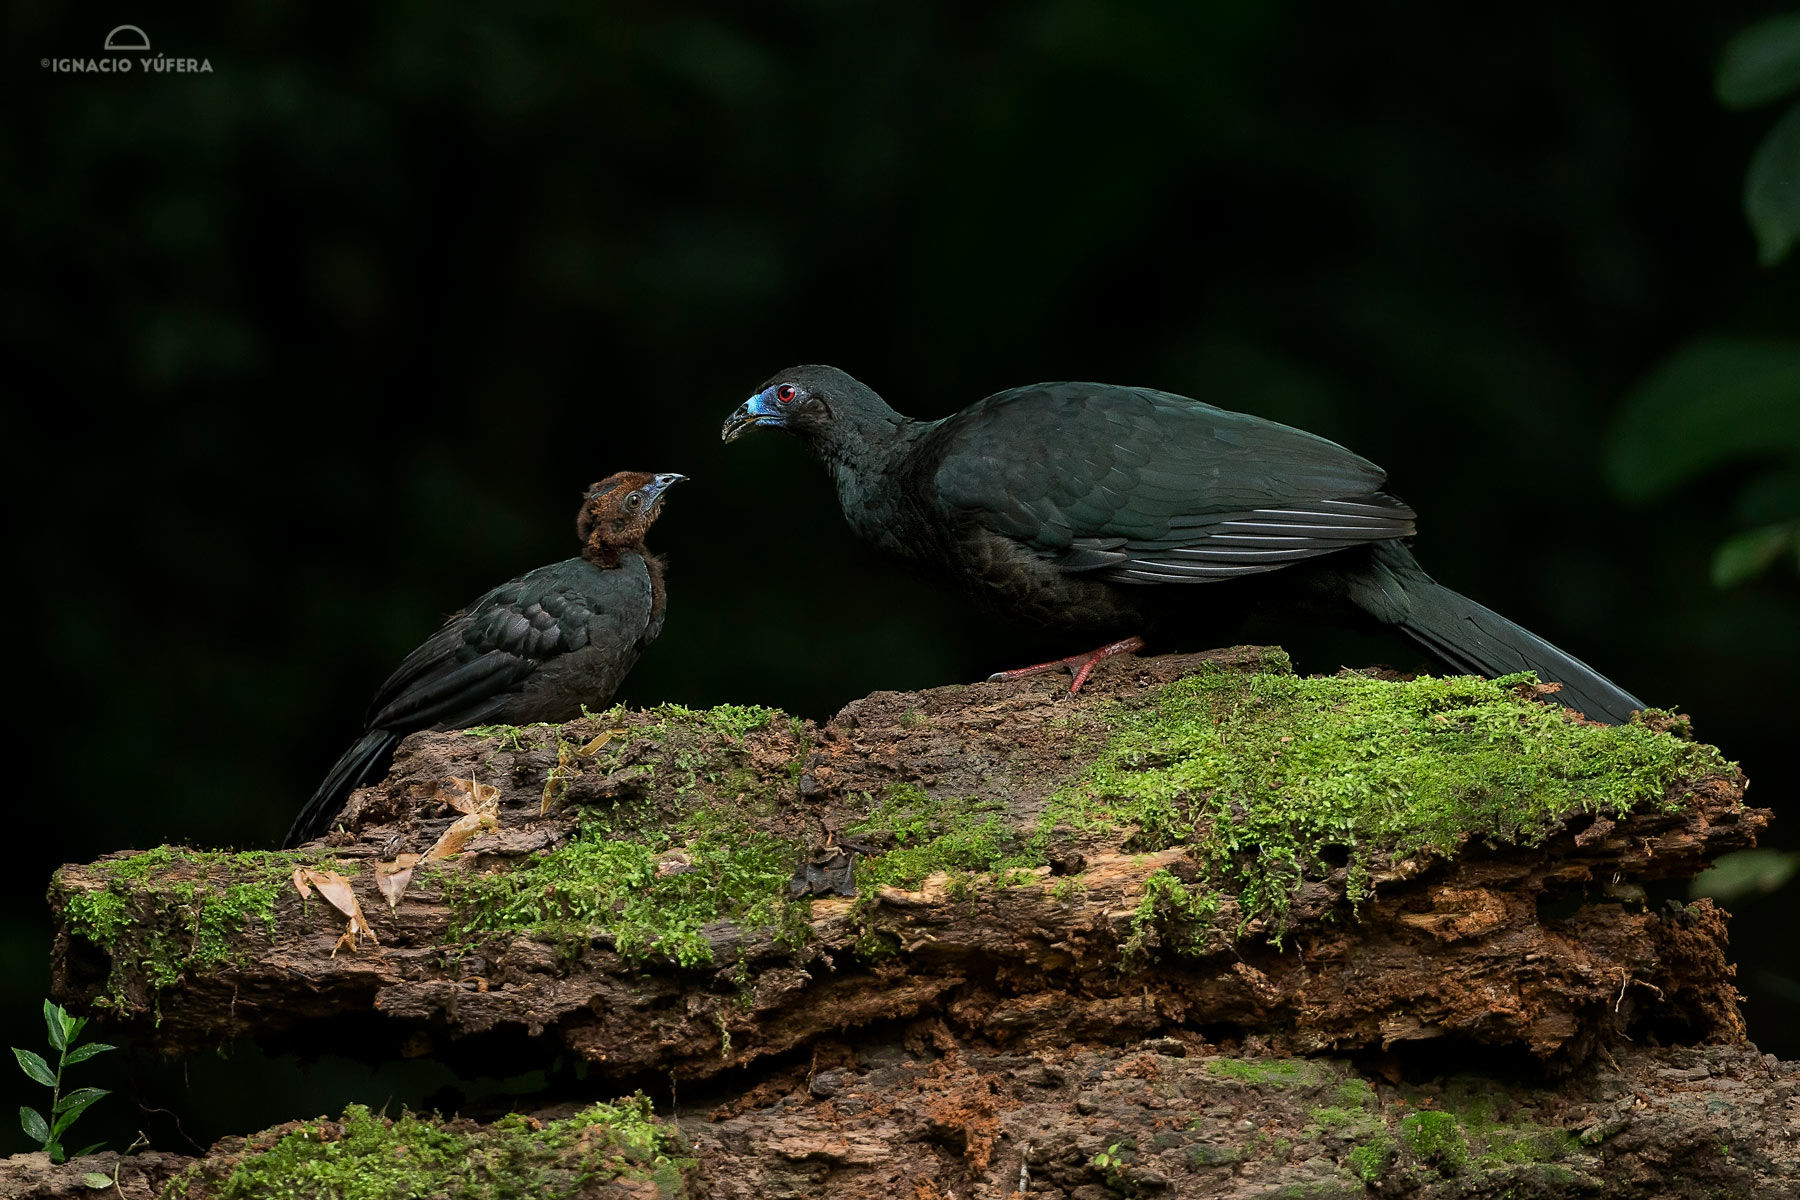 Black guan with chick